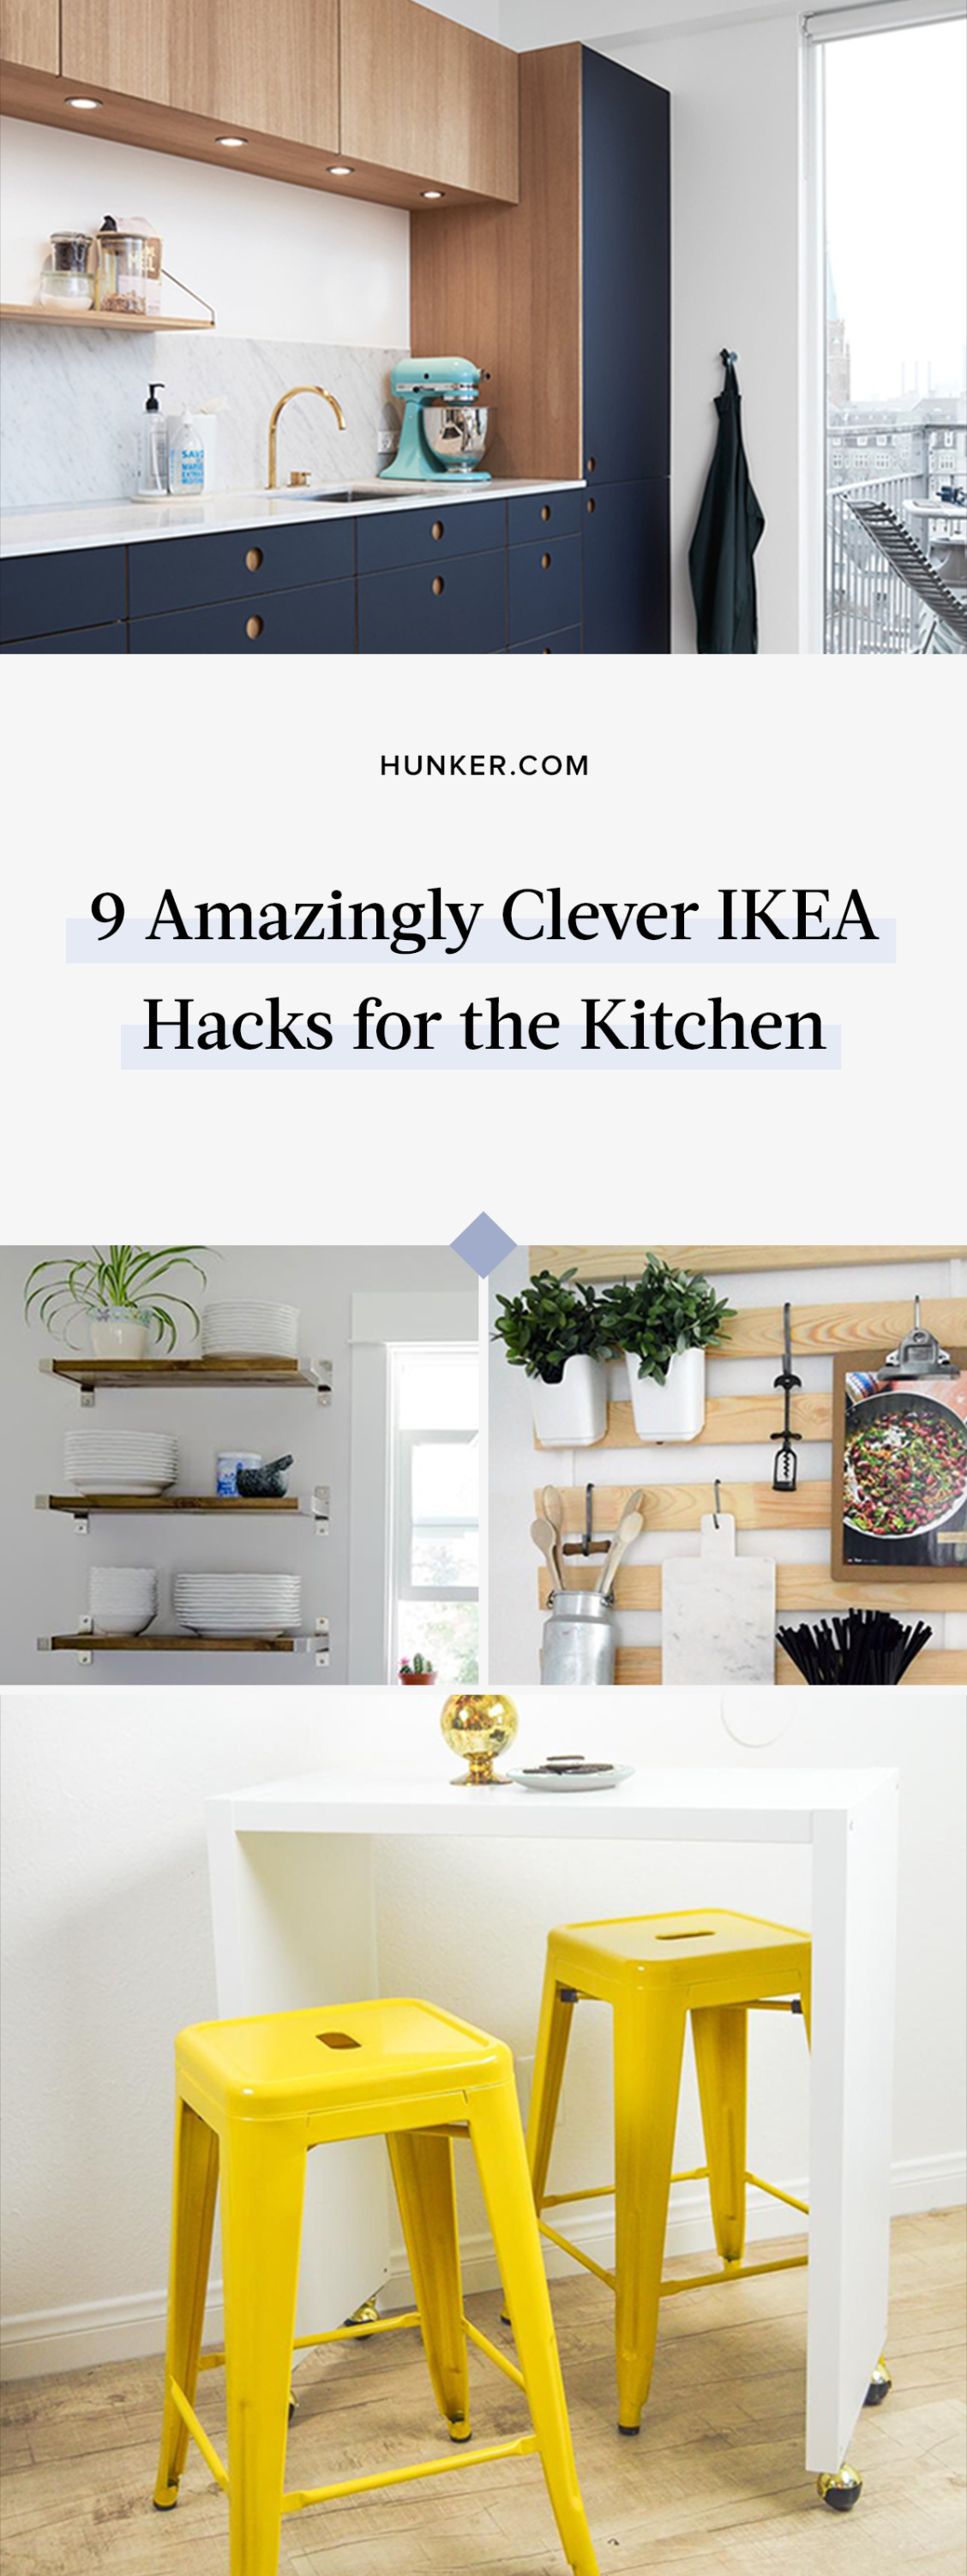 9 amazingly clever ikea hacks for the kitchen ikea hack kitchen new cabinet ikea hack on kitchen island ideas diy ikea hacks id=77642